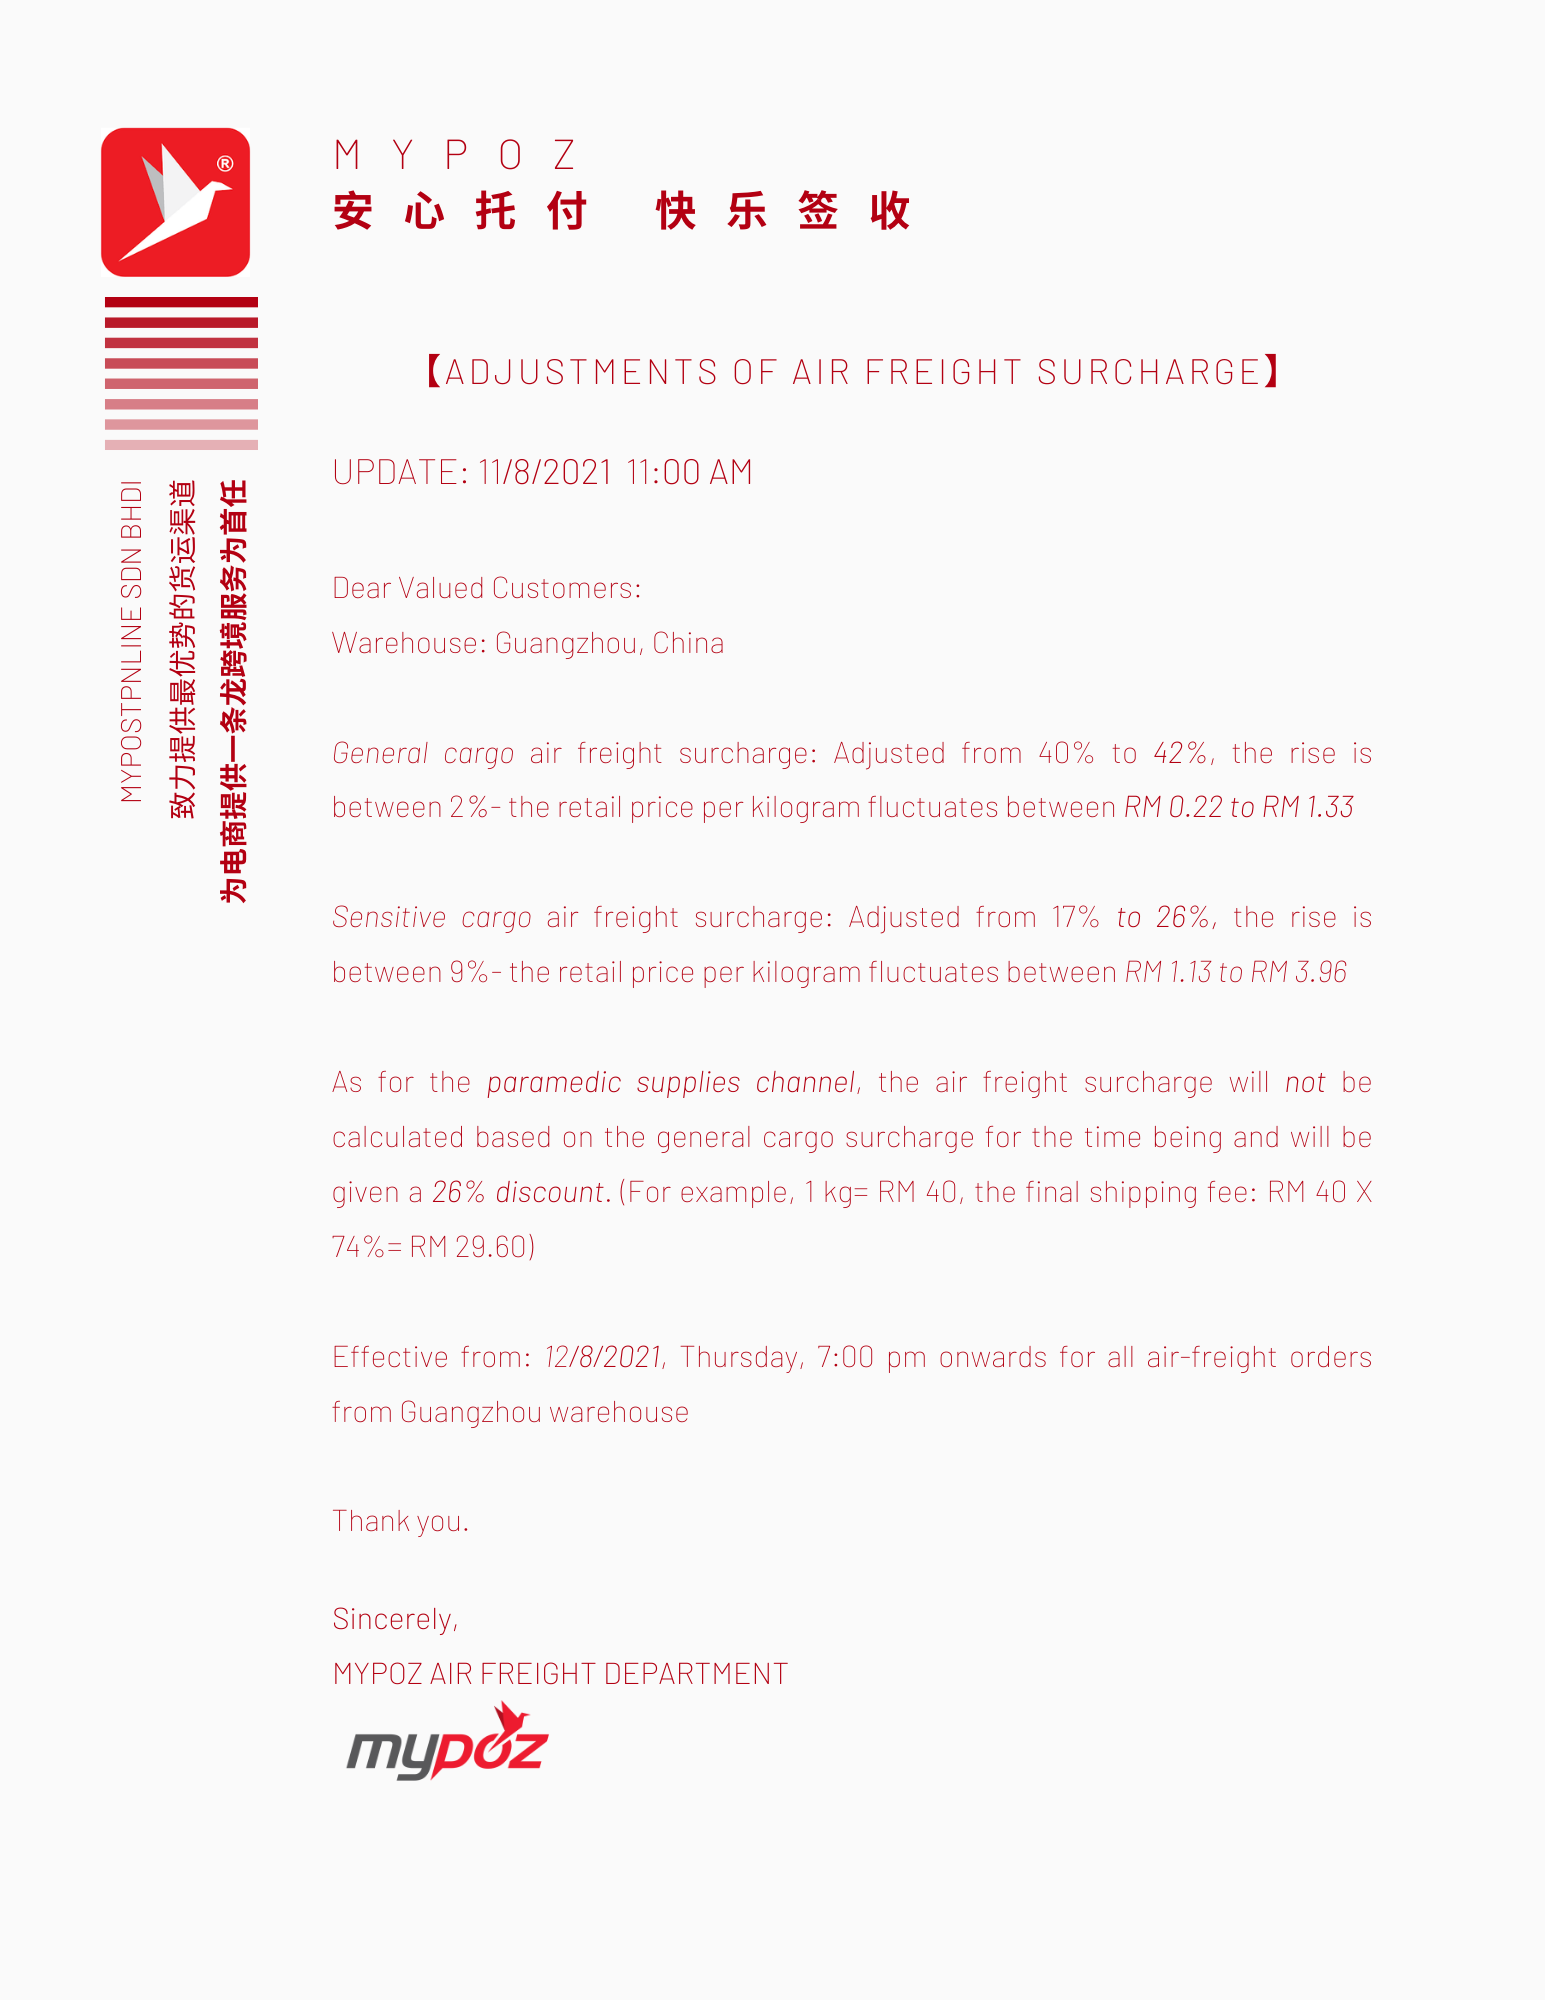 【NOTICE】ADJUSTMENTS OF AIR FREIGHT SURCHARGE